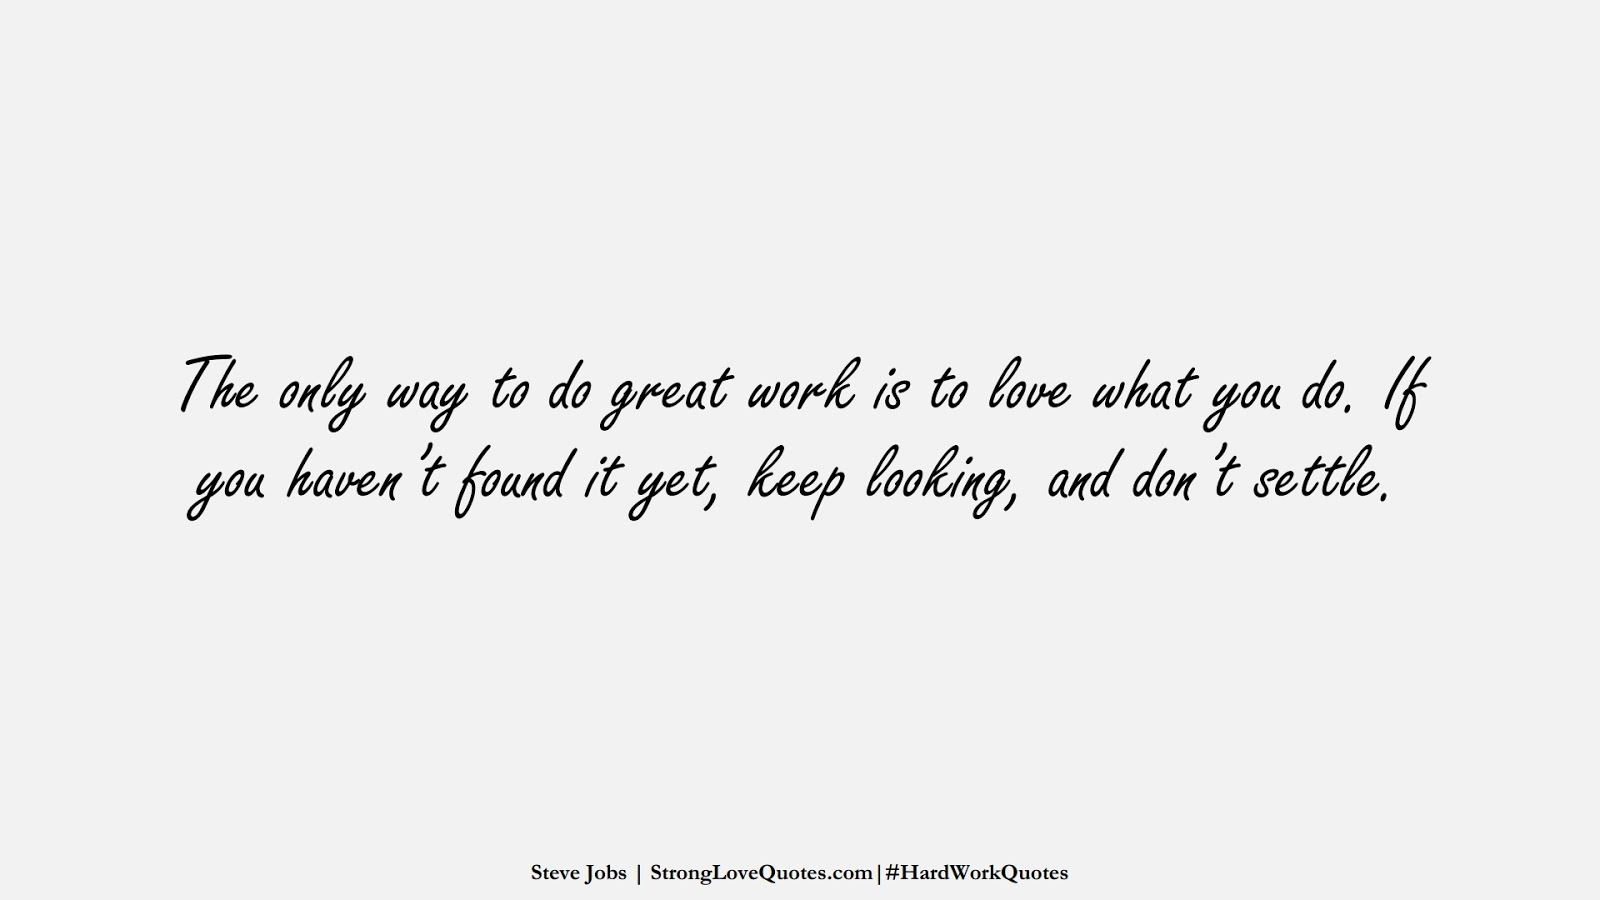 The only way to do great work is to love what you do. If you haven't found it yet, keep looking, and don't settle. (Steve Jobs);  #HardWorkQuotes